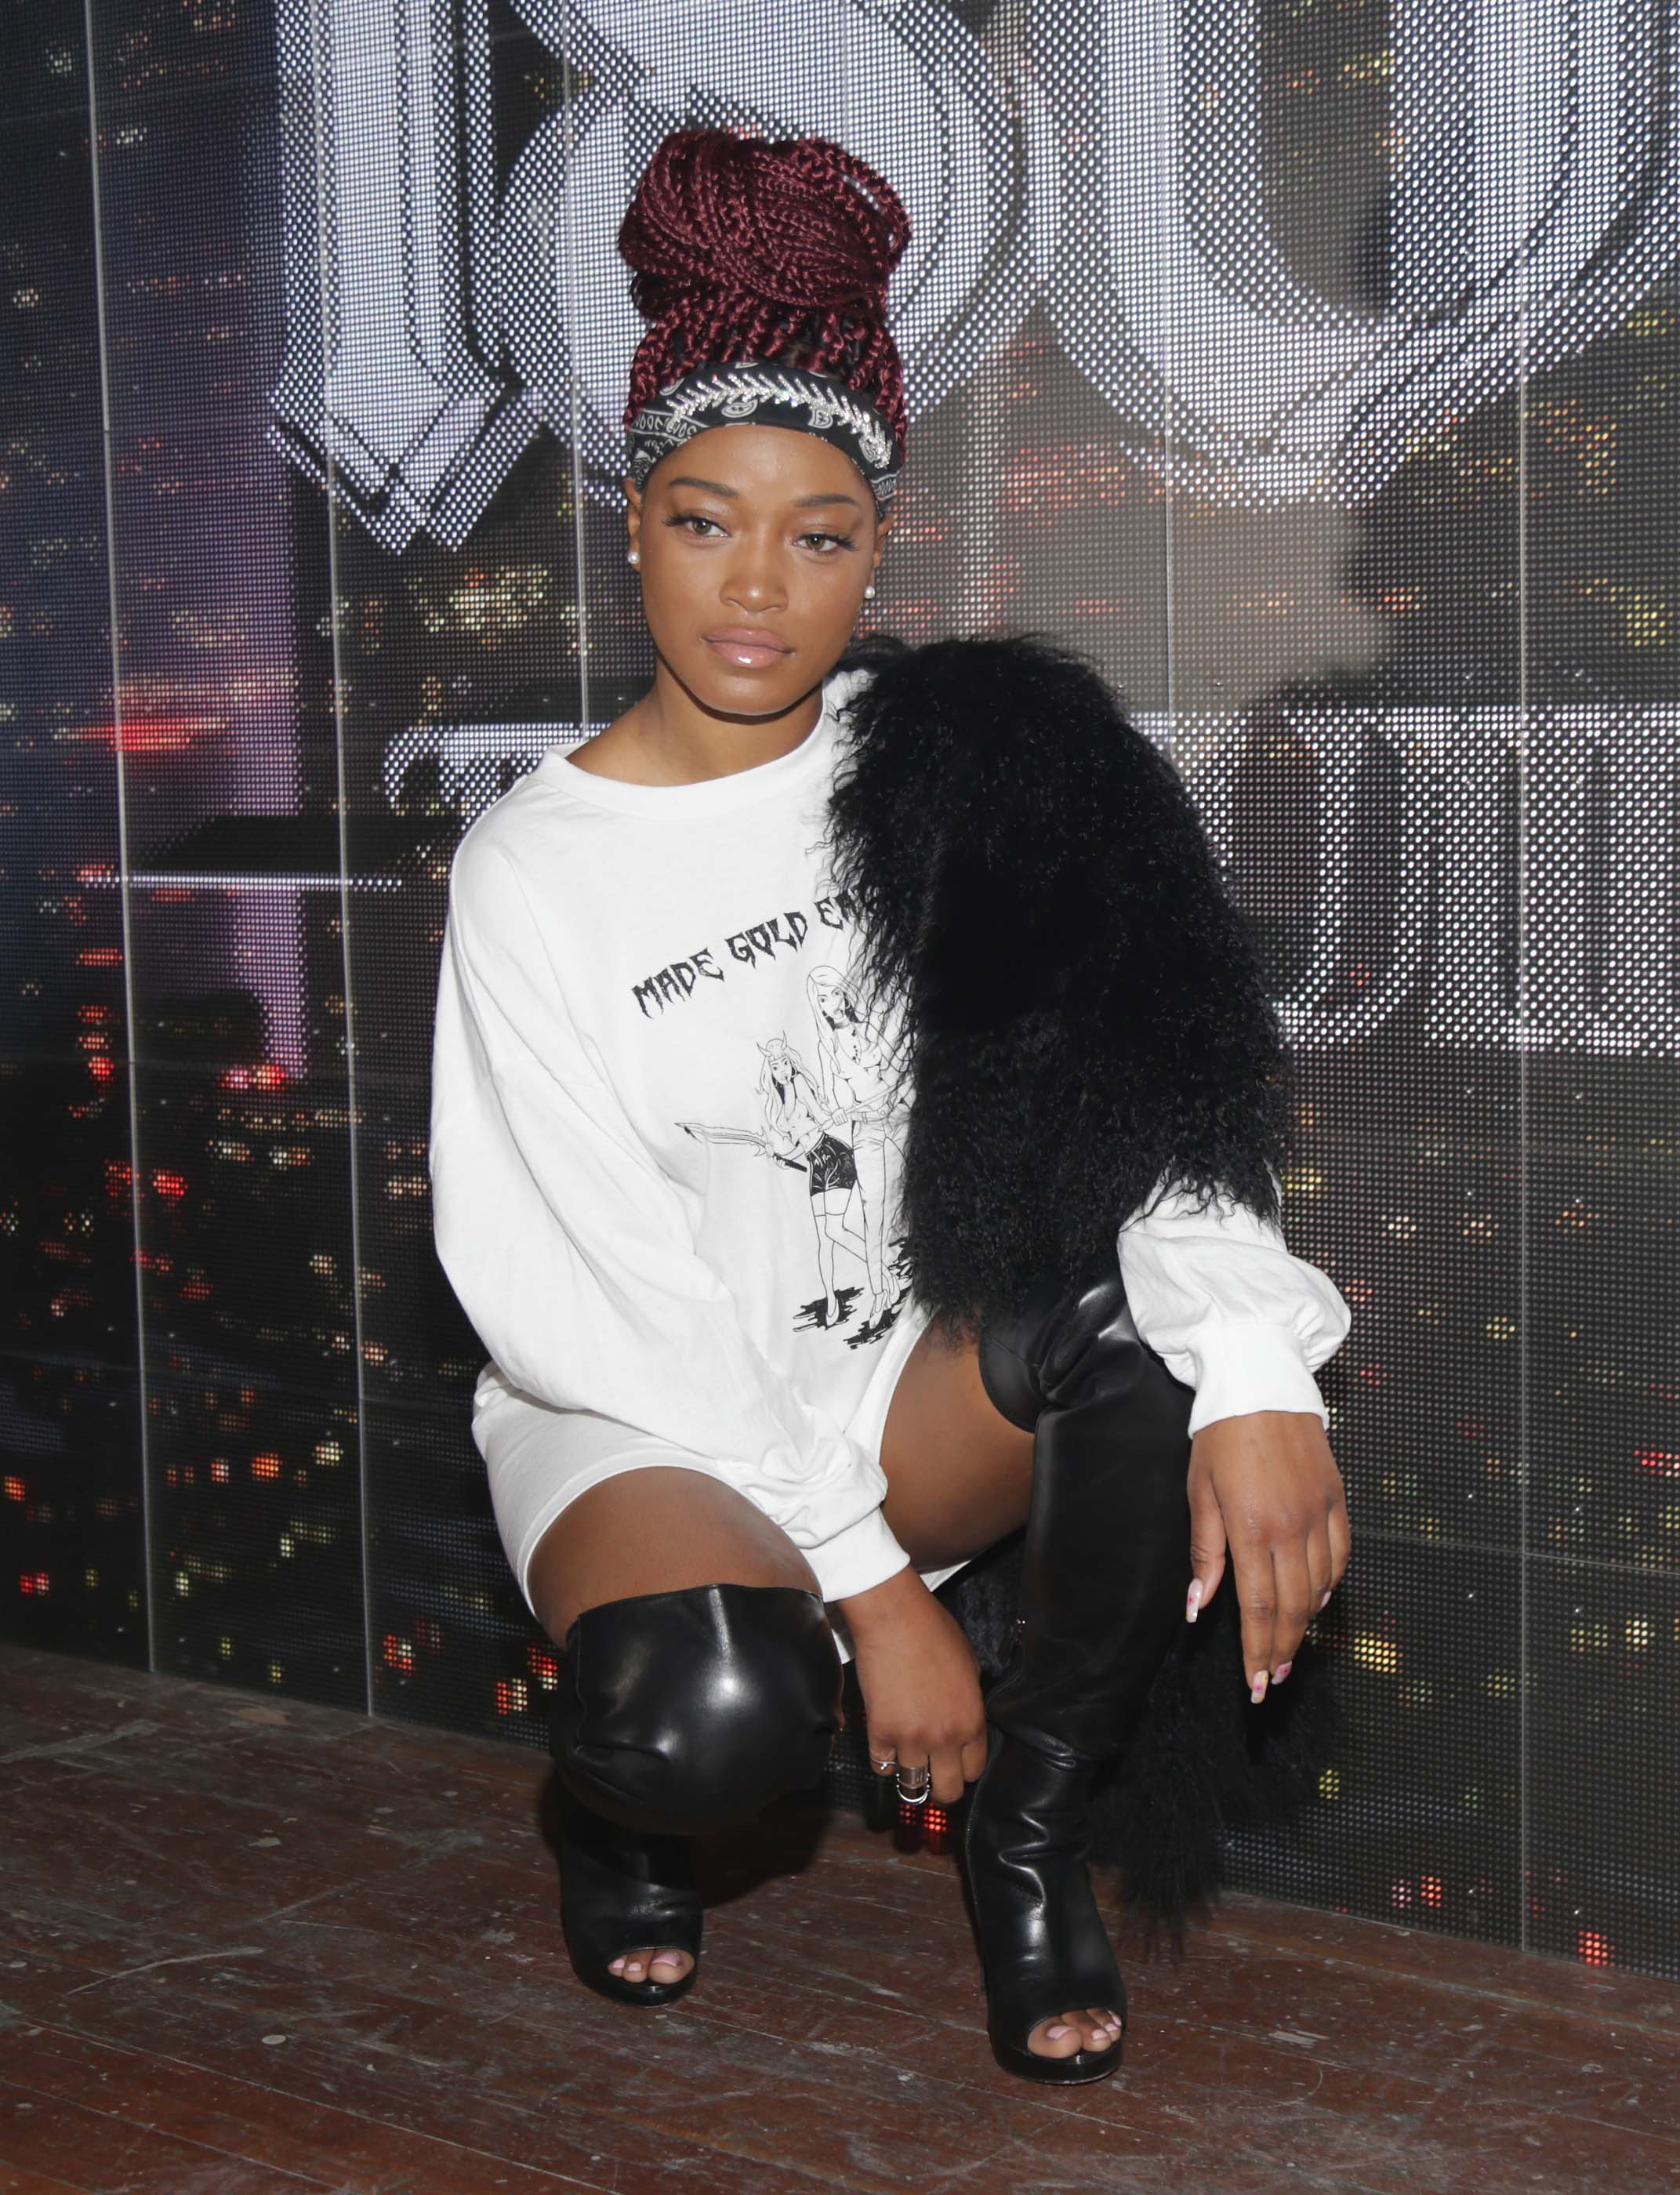 Keke Palmer & Andrea Hamilton attend Rae Sremmurd's birthday party